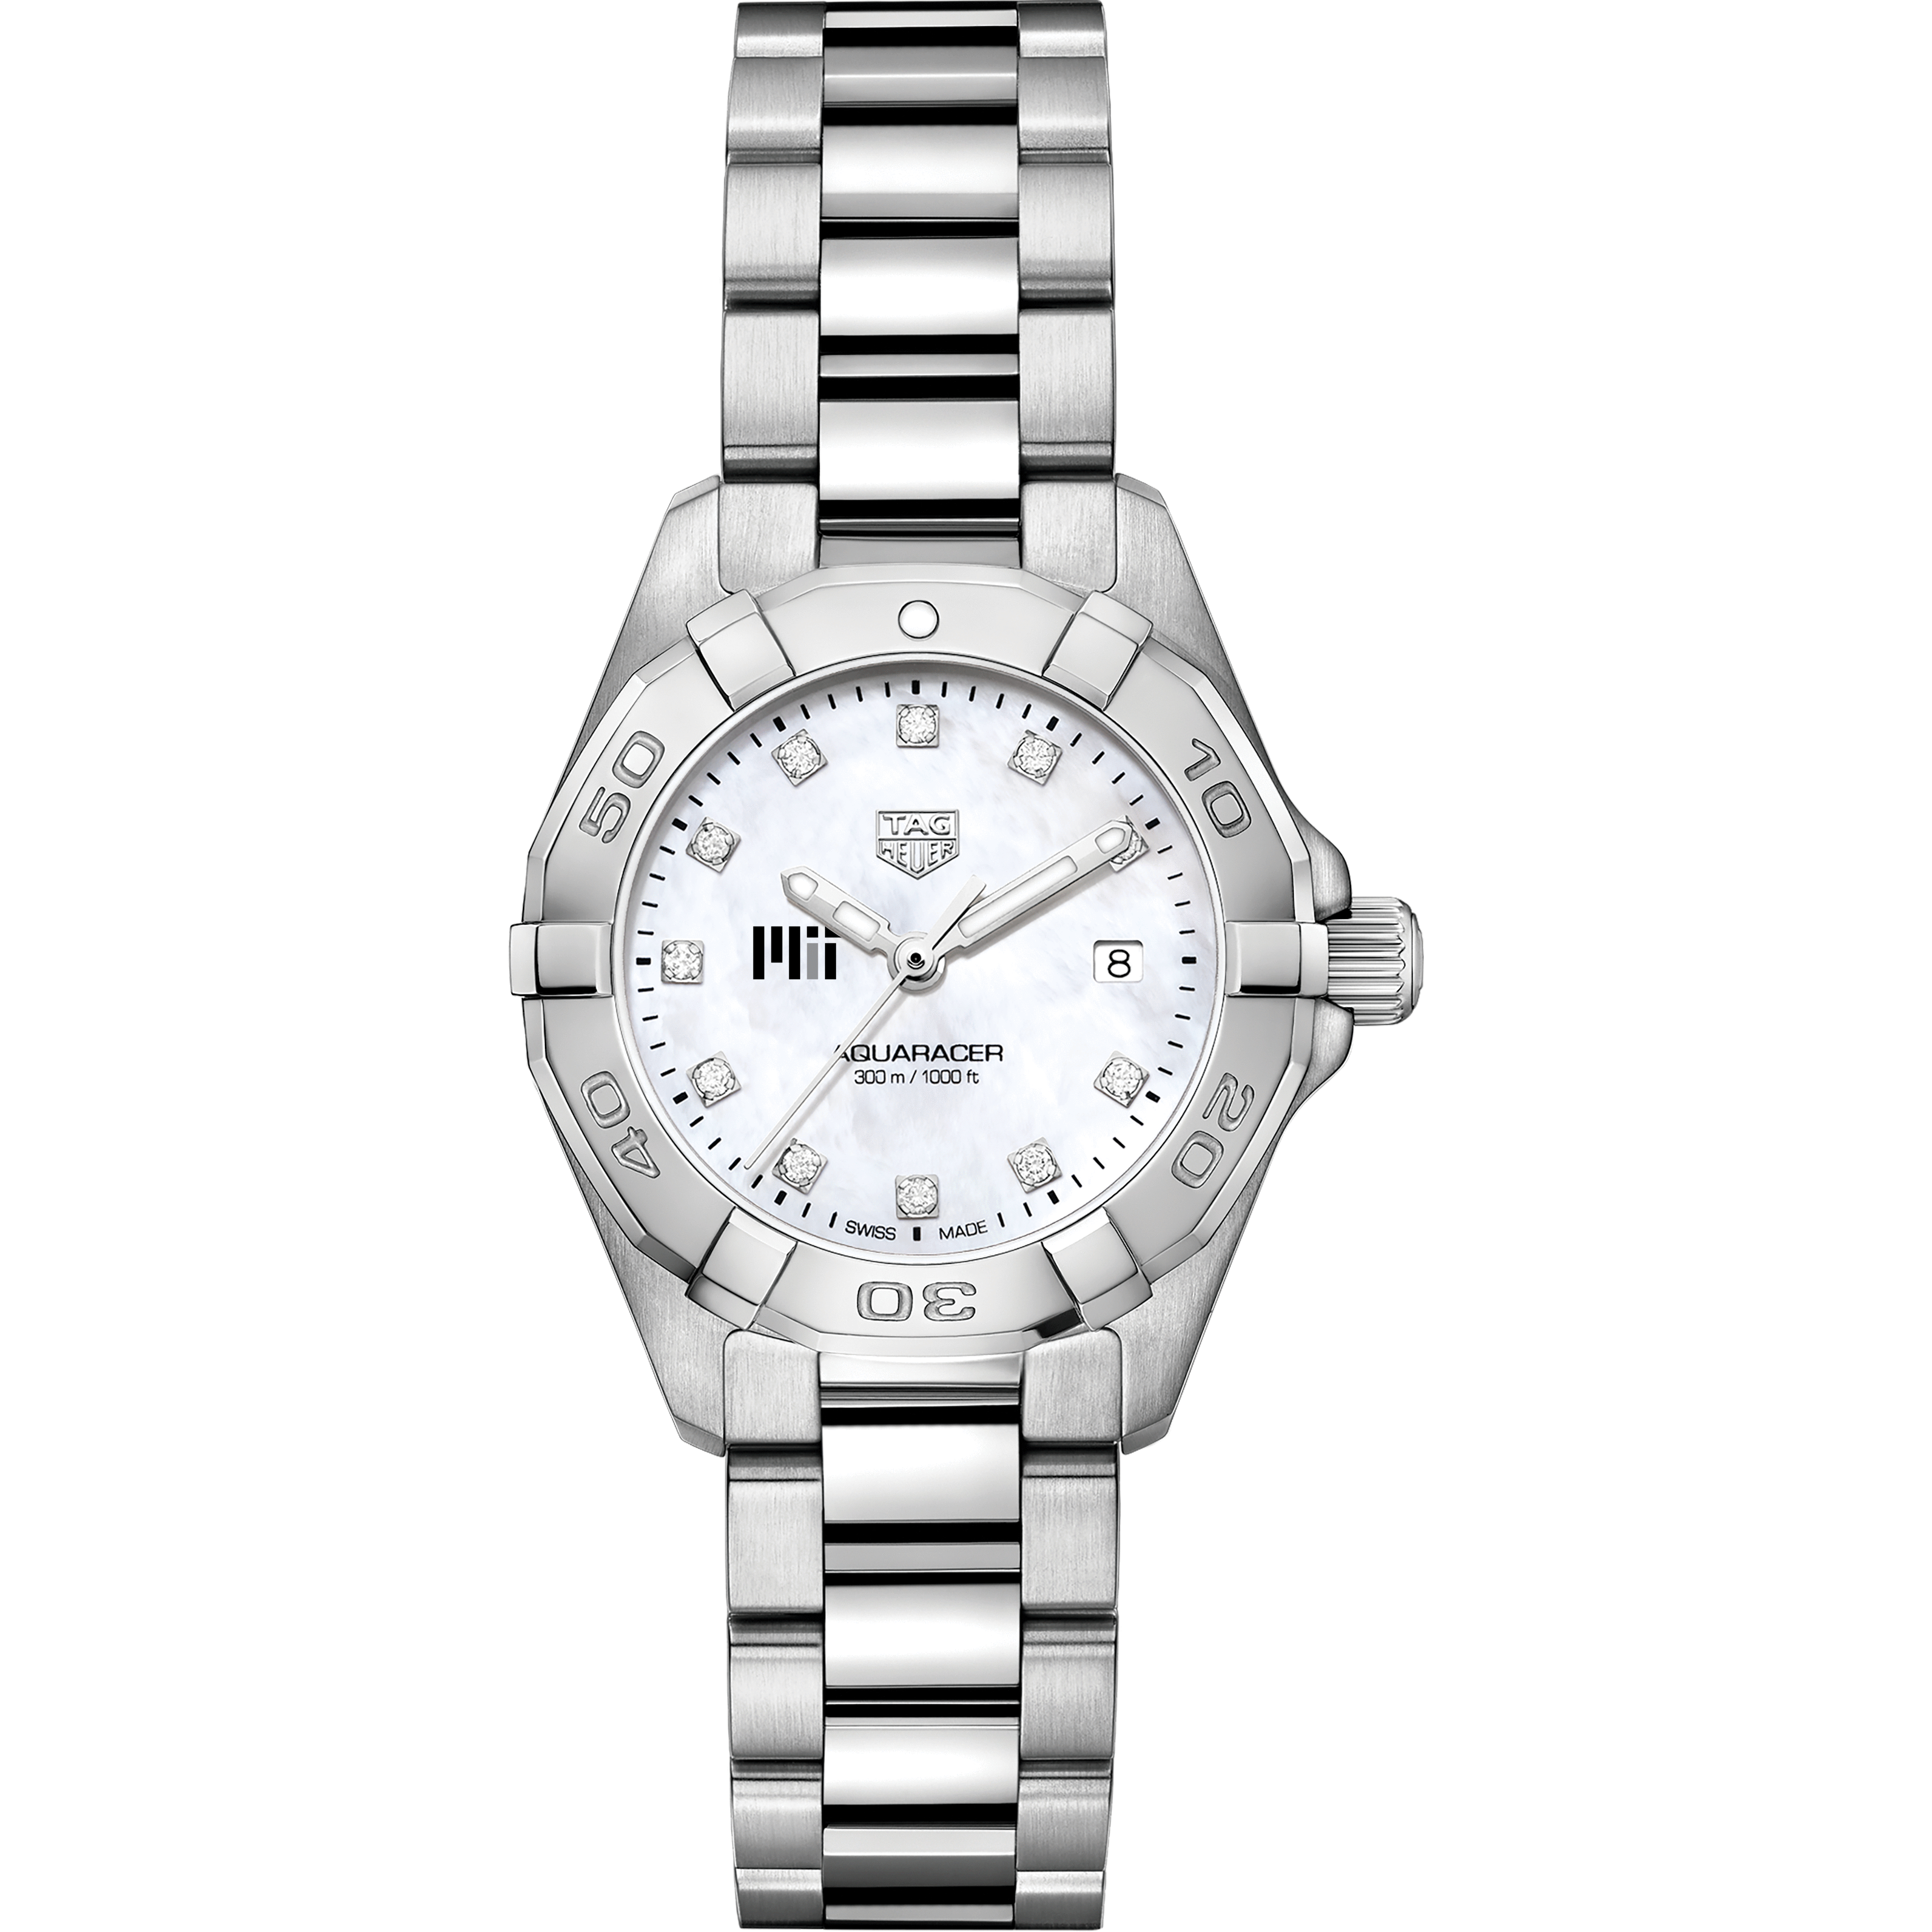 MIT Women's TAG Heuer Steel Aquaracer with MOP Diamond Dial - Image 2